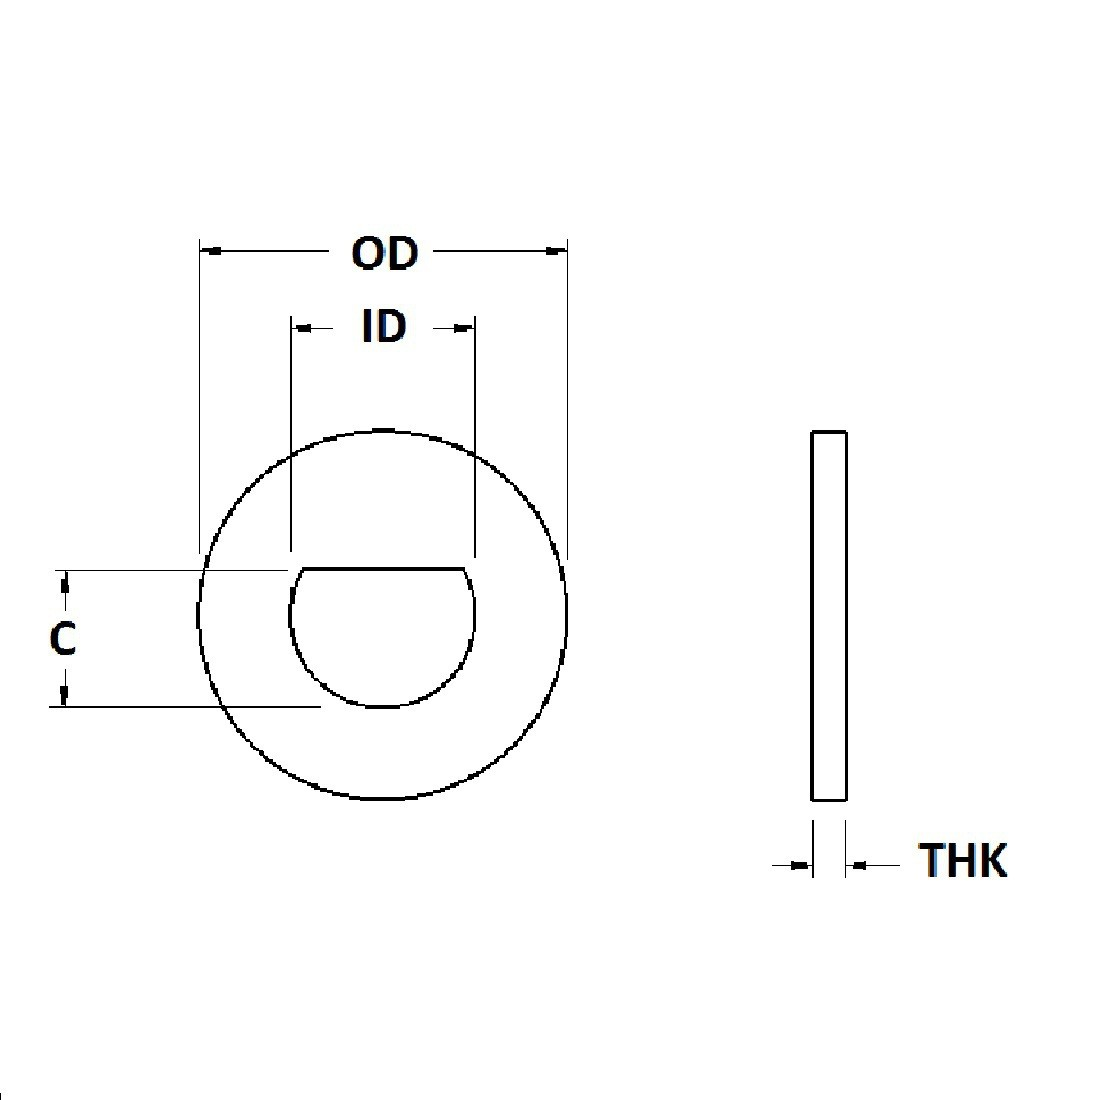 D-Shaped ID Washer - 0.866 ID, 1.500 OD, 0.118 Thick, Low Carbon Steel - Case Hard